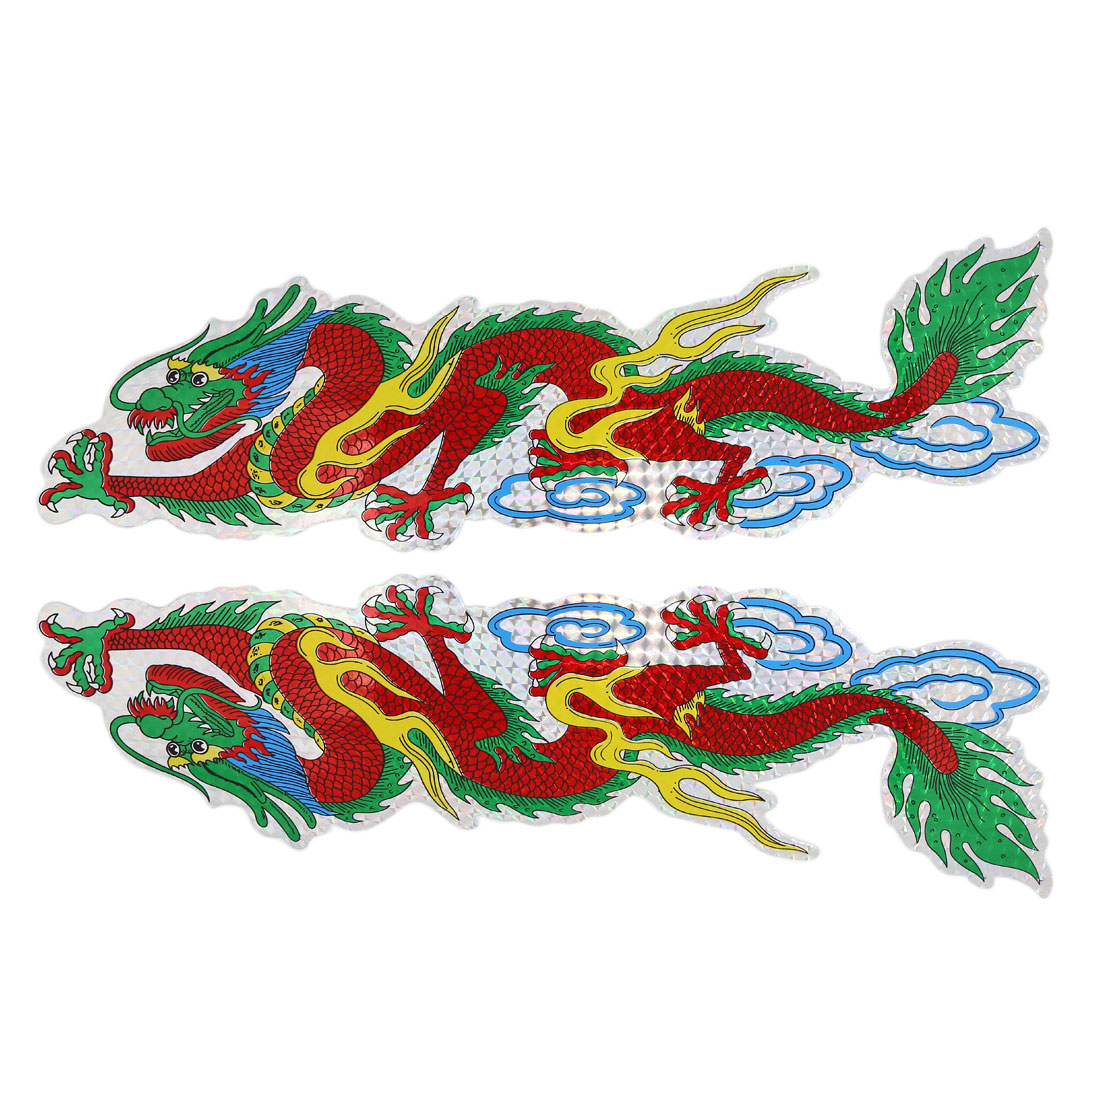 Dragon Pattern Self-adhesive Graphic Decal Exterior Sticker 41.5cmx11cm 2 Pcs